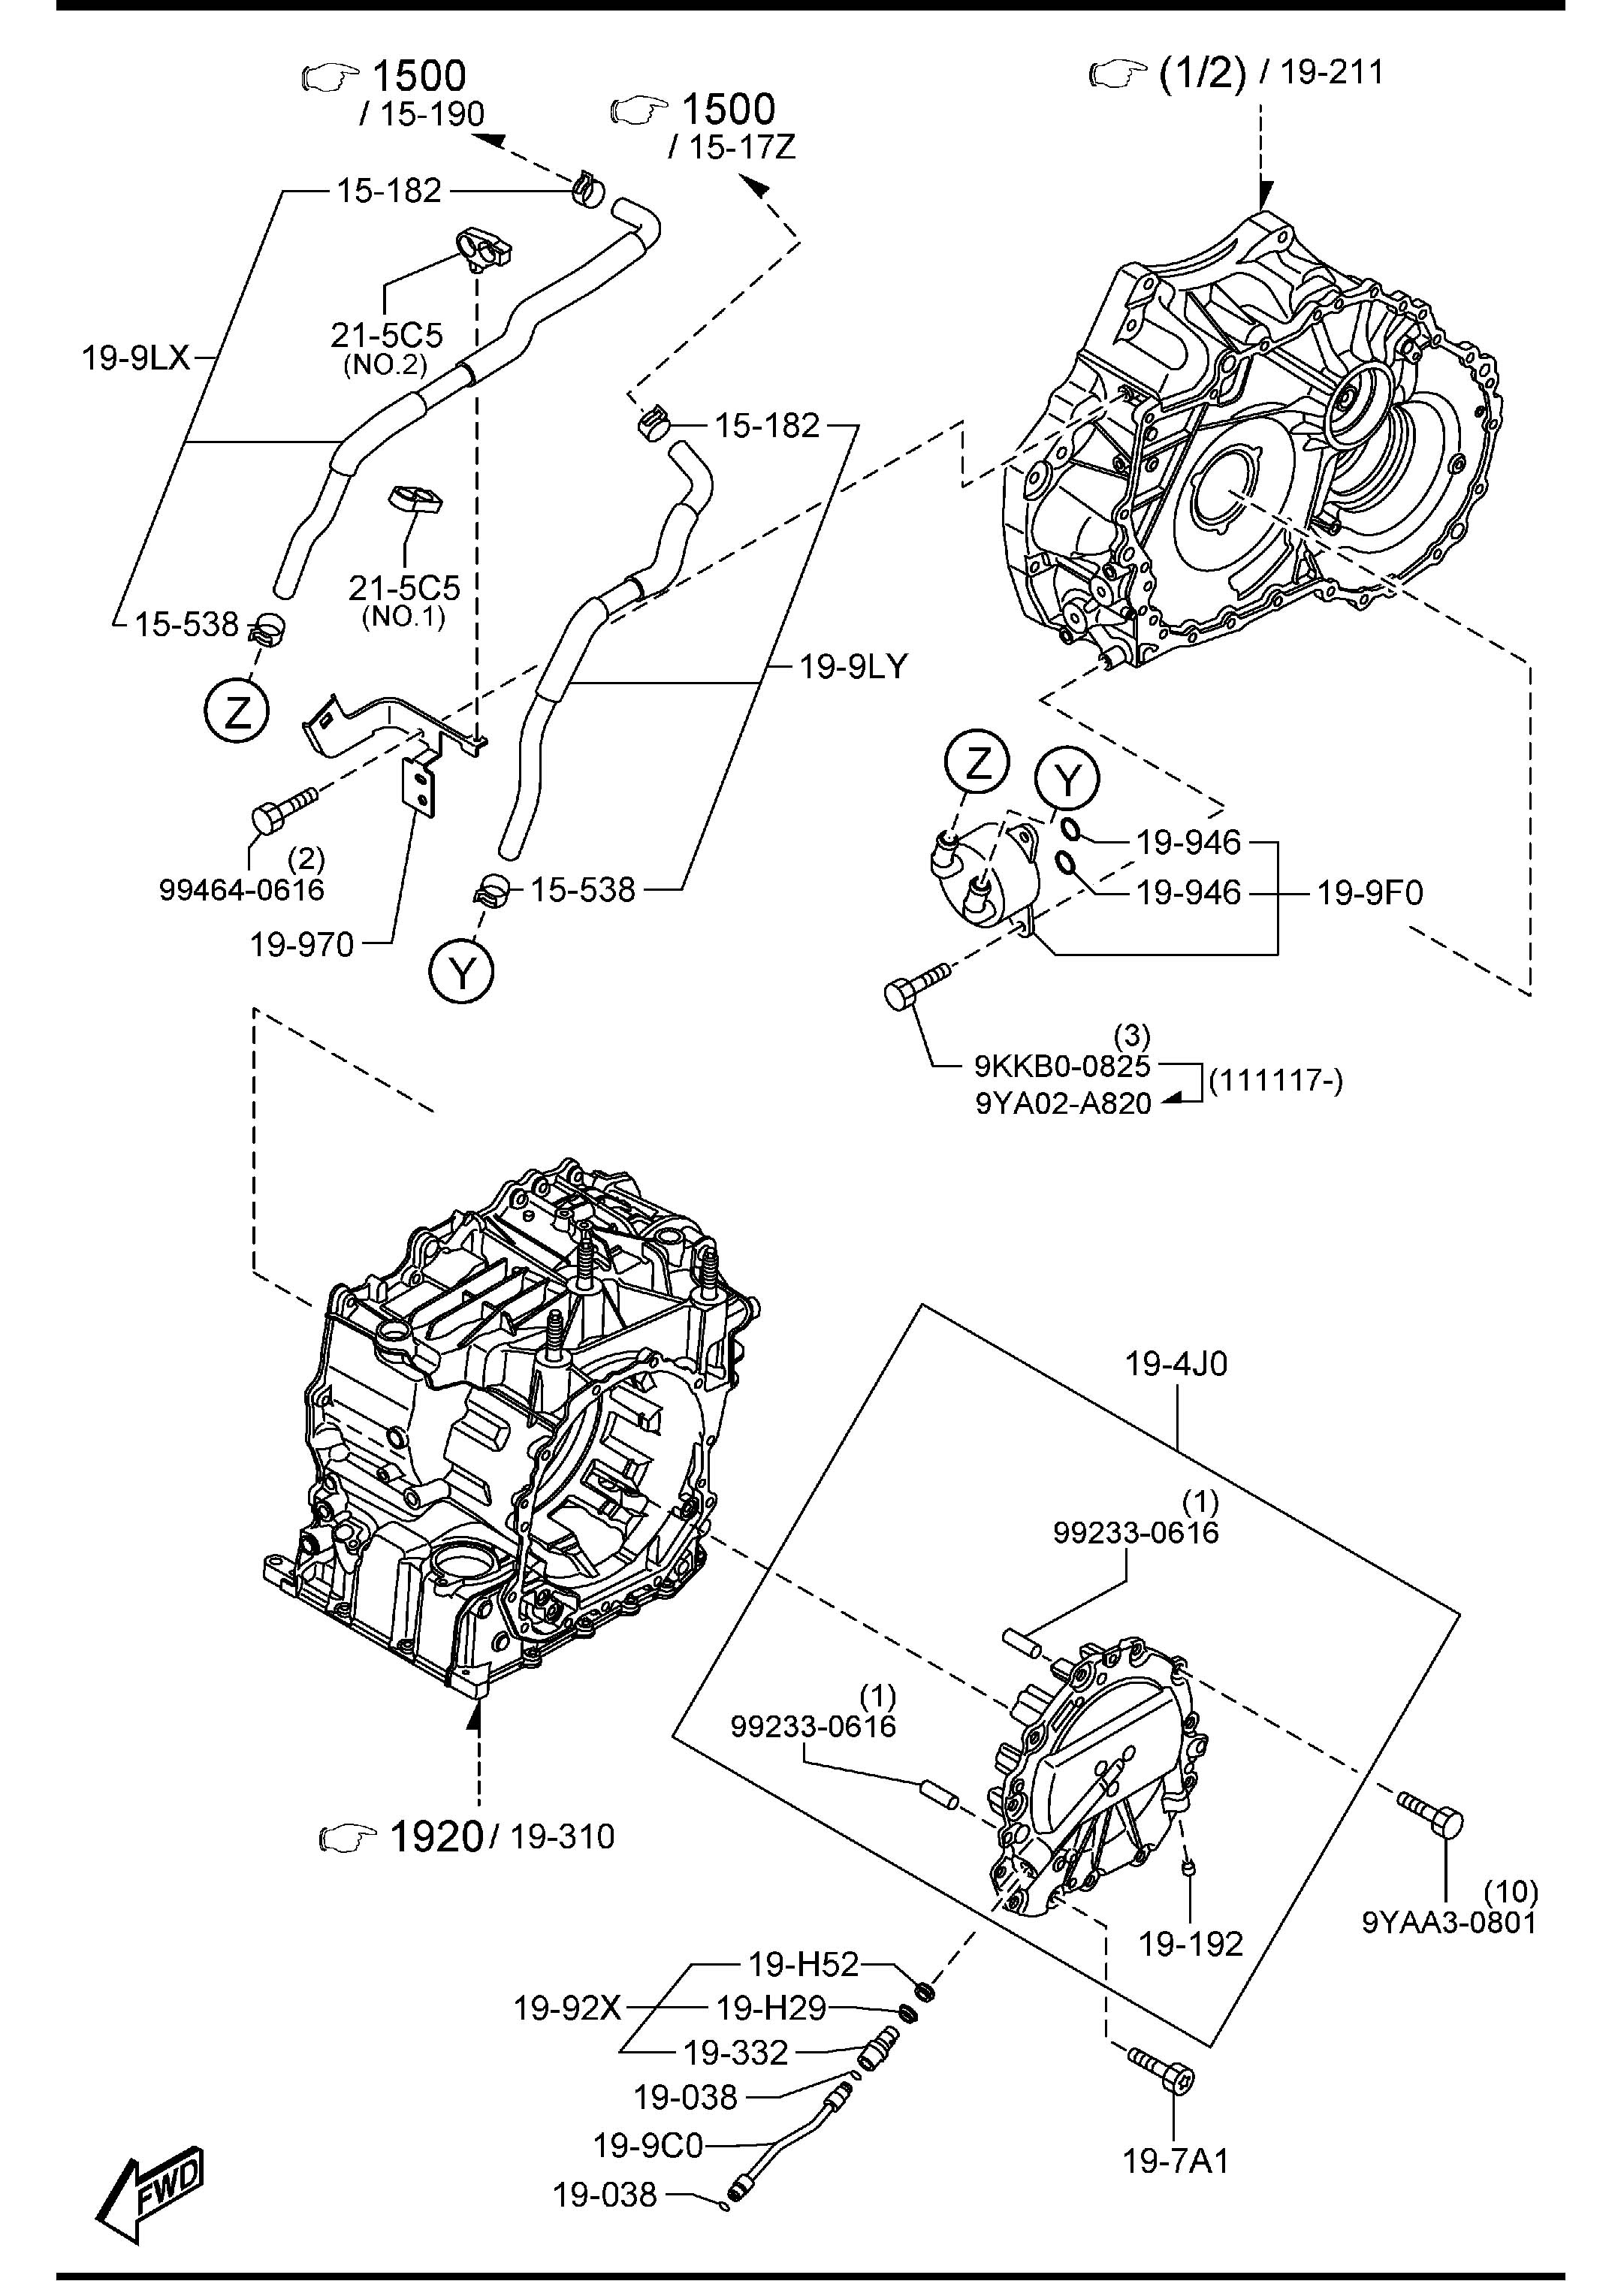 mazda 626 4cyl engine diagram  mazda  auto wiring diagram